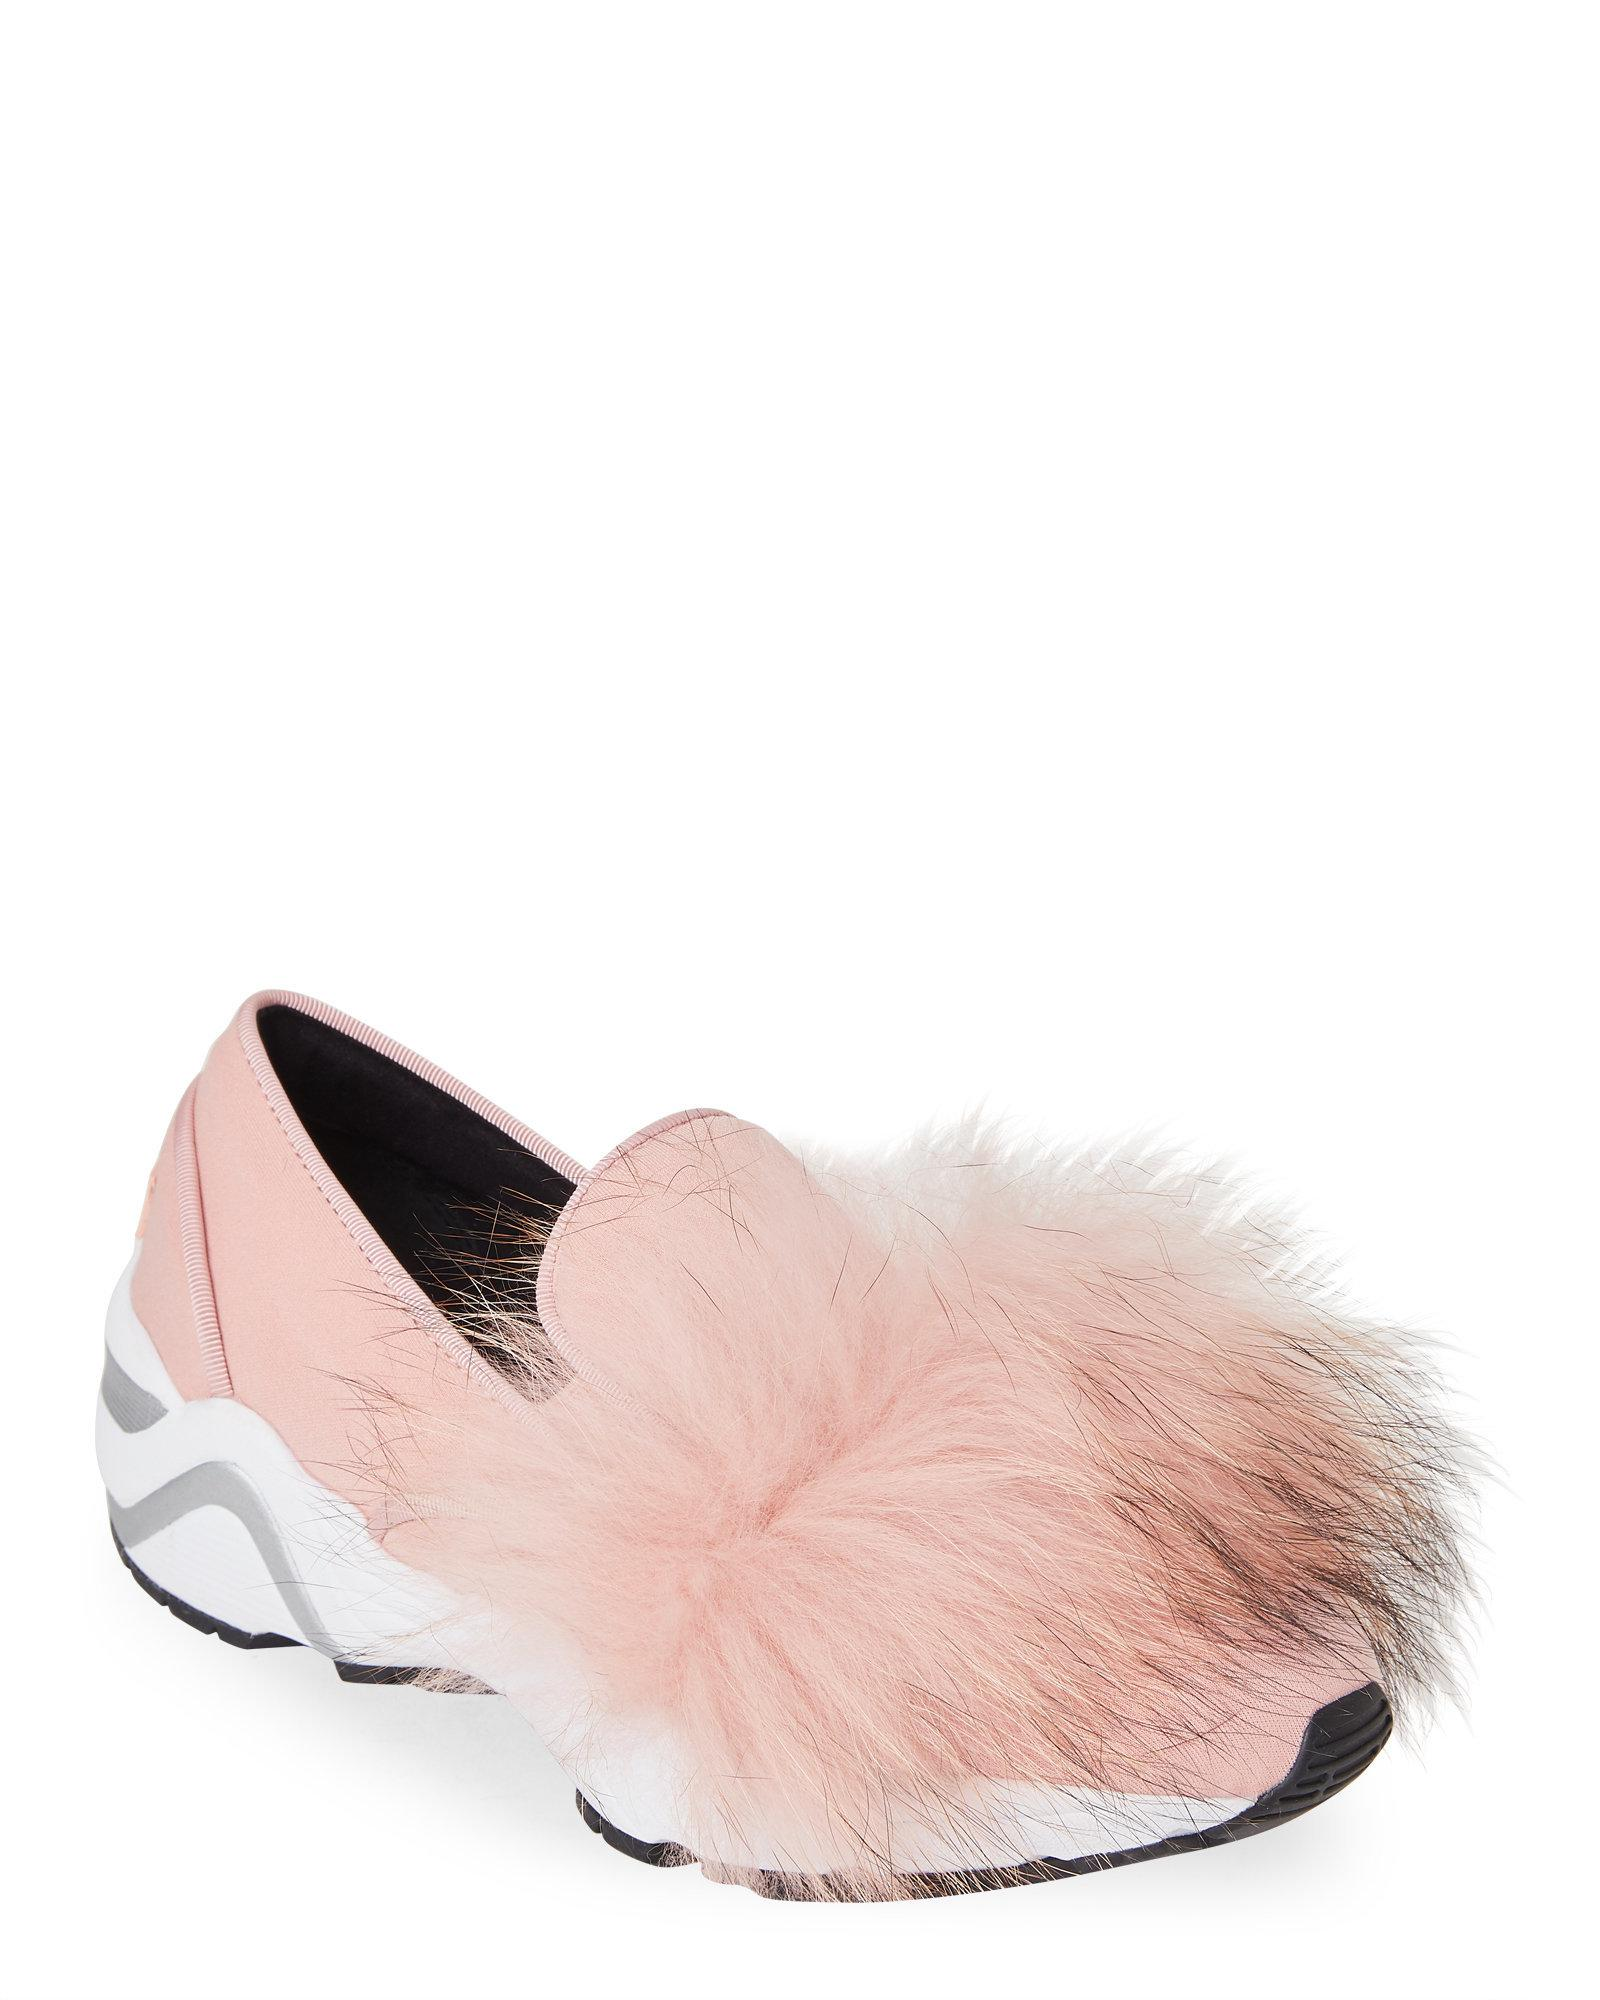 2c213cf8568 suecomma-bonnie-Pink-Pink-Real-Fur-Trim-Slip-on-Sneakers.jpeg